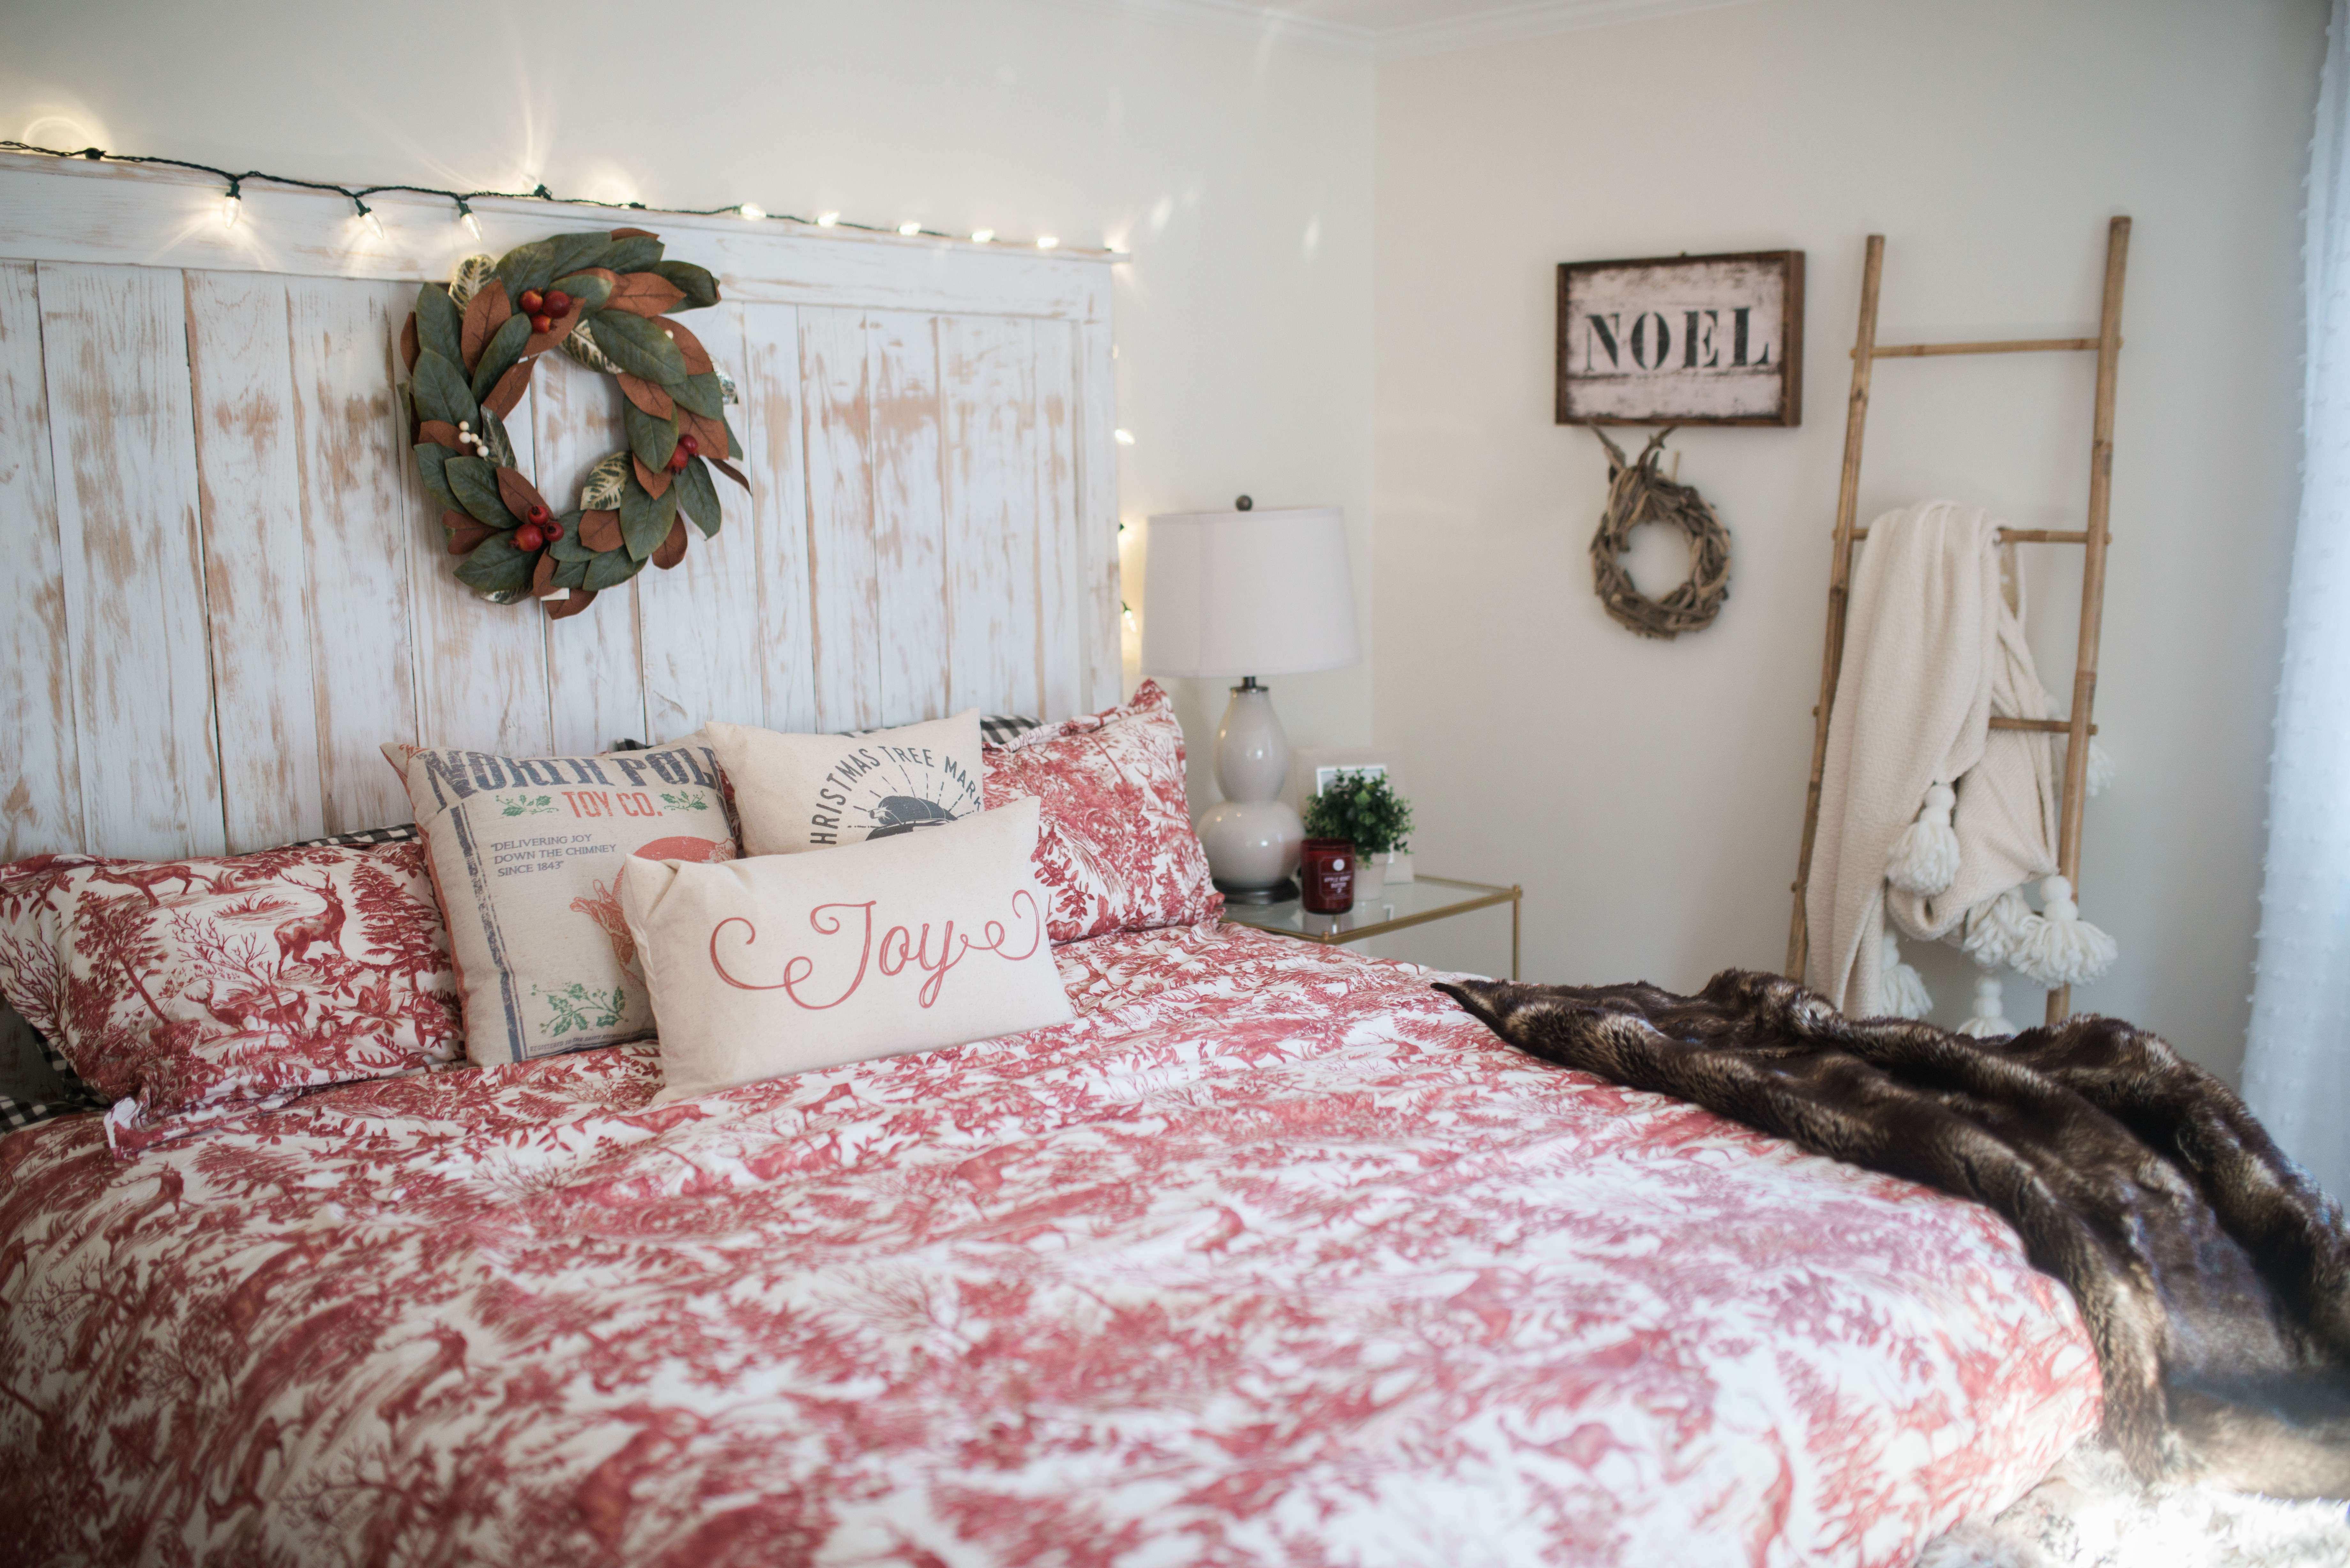 Bedroom Wall Decor Ideas Lovely Our Bedroom Holiday Decor Bedroom Wall Decorations